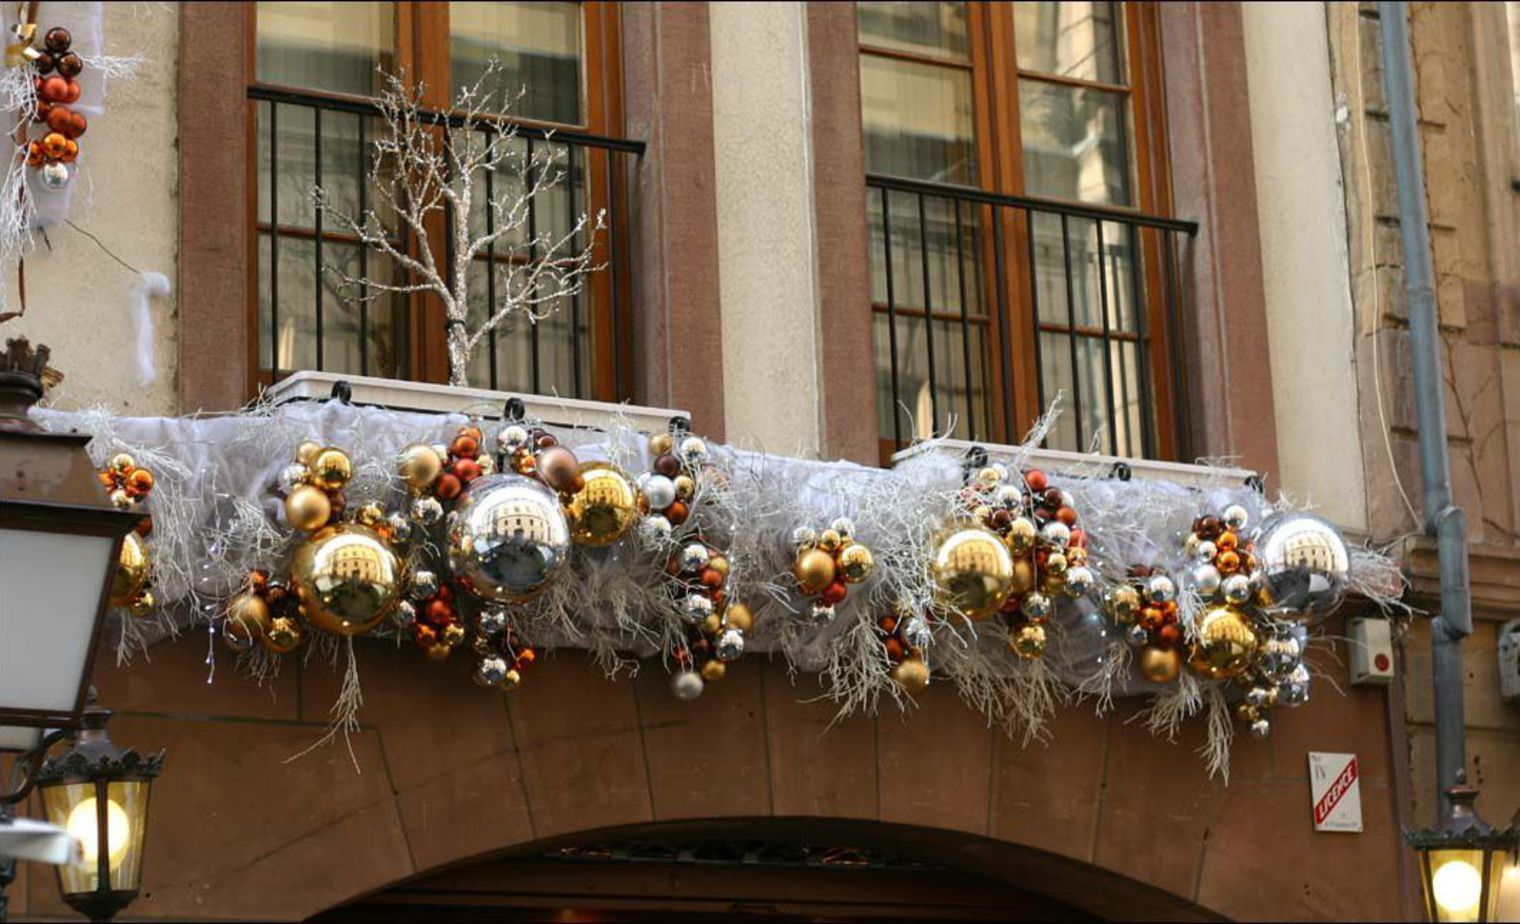 D coration noel exterieur balcon exemples d 39 am nagements for Deco de noel